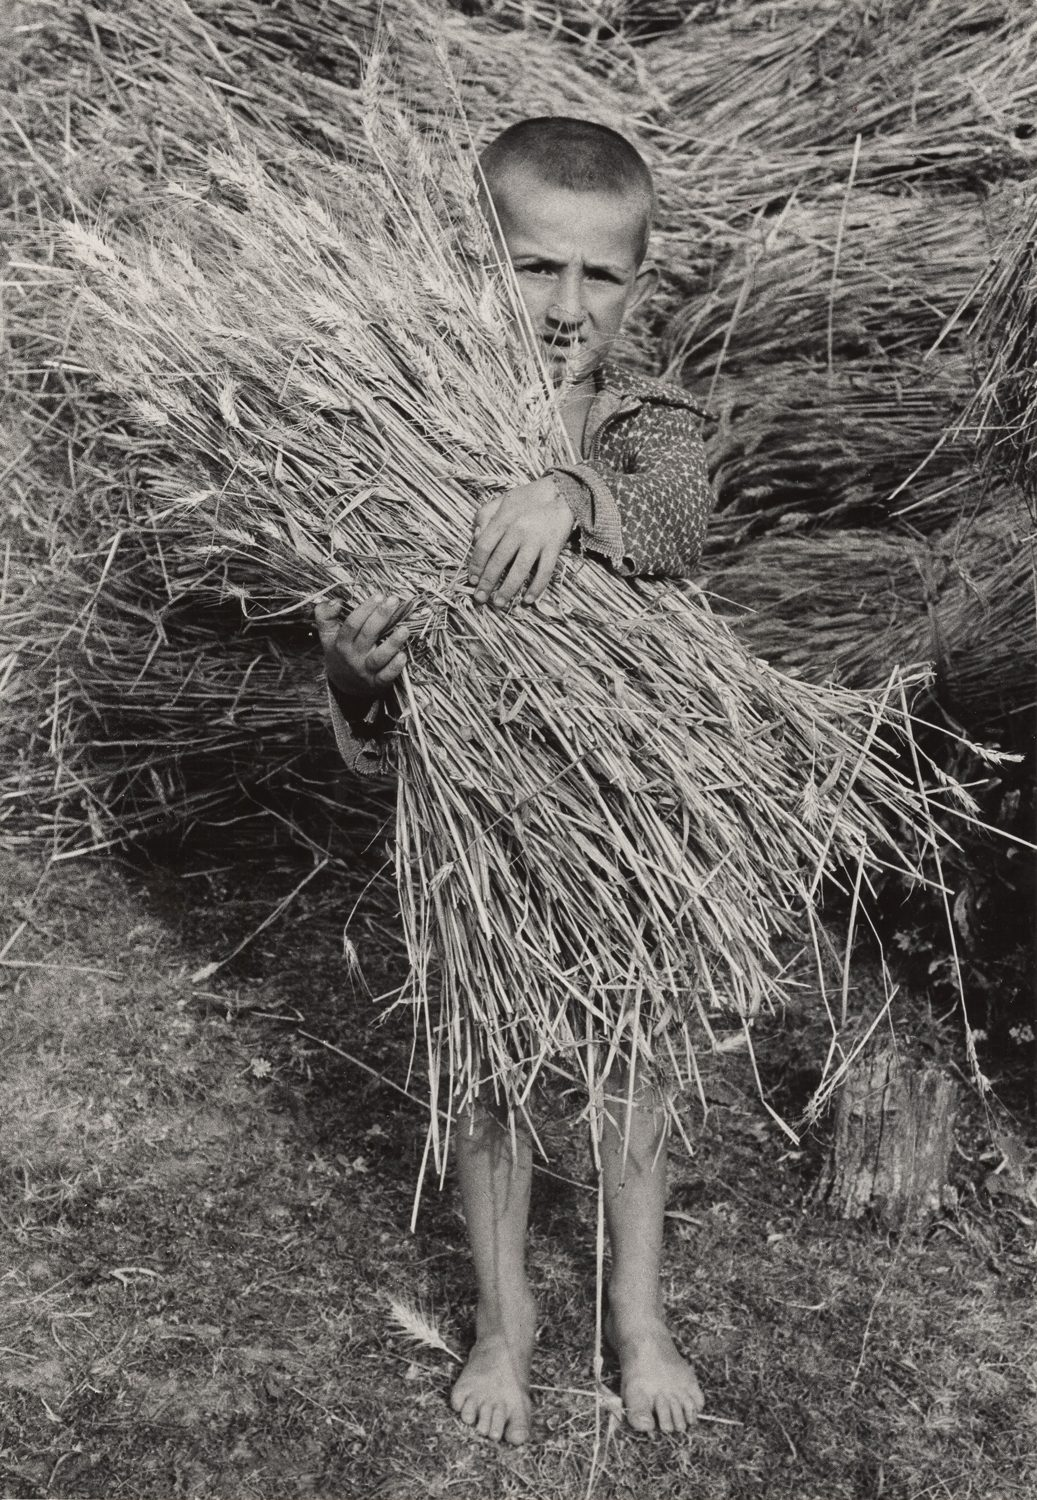 A Young Boy with a Bundle of Wheat in his Hands, Albania